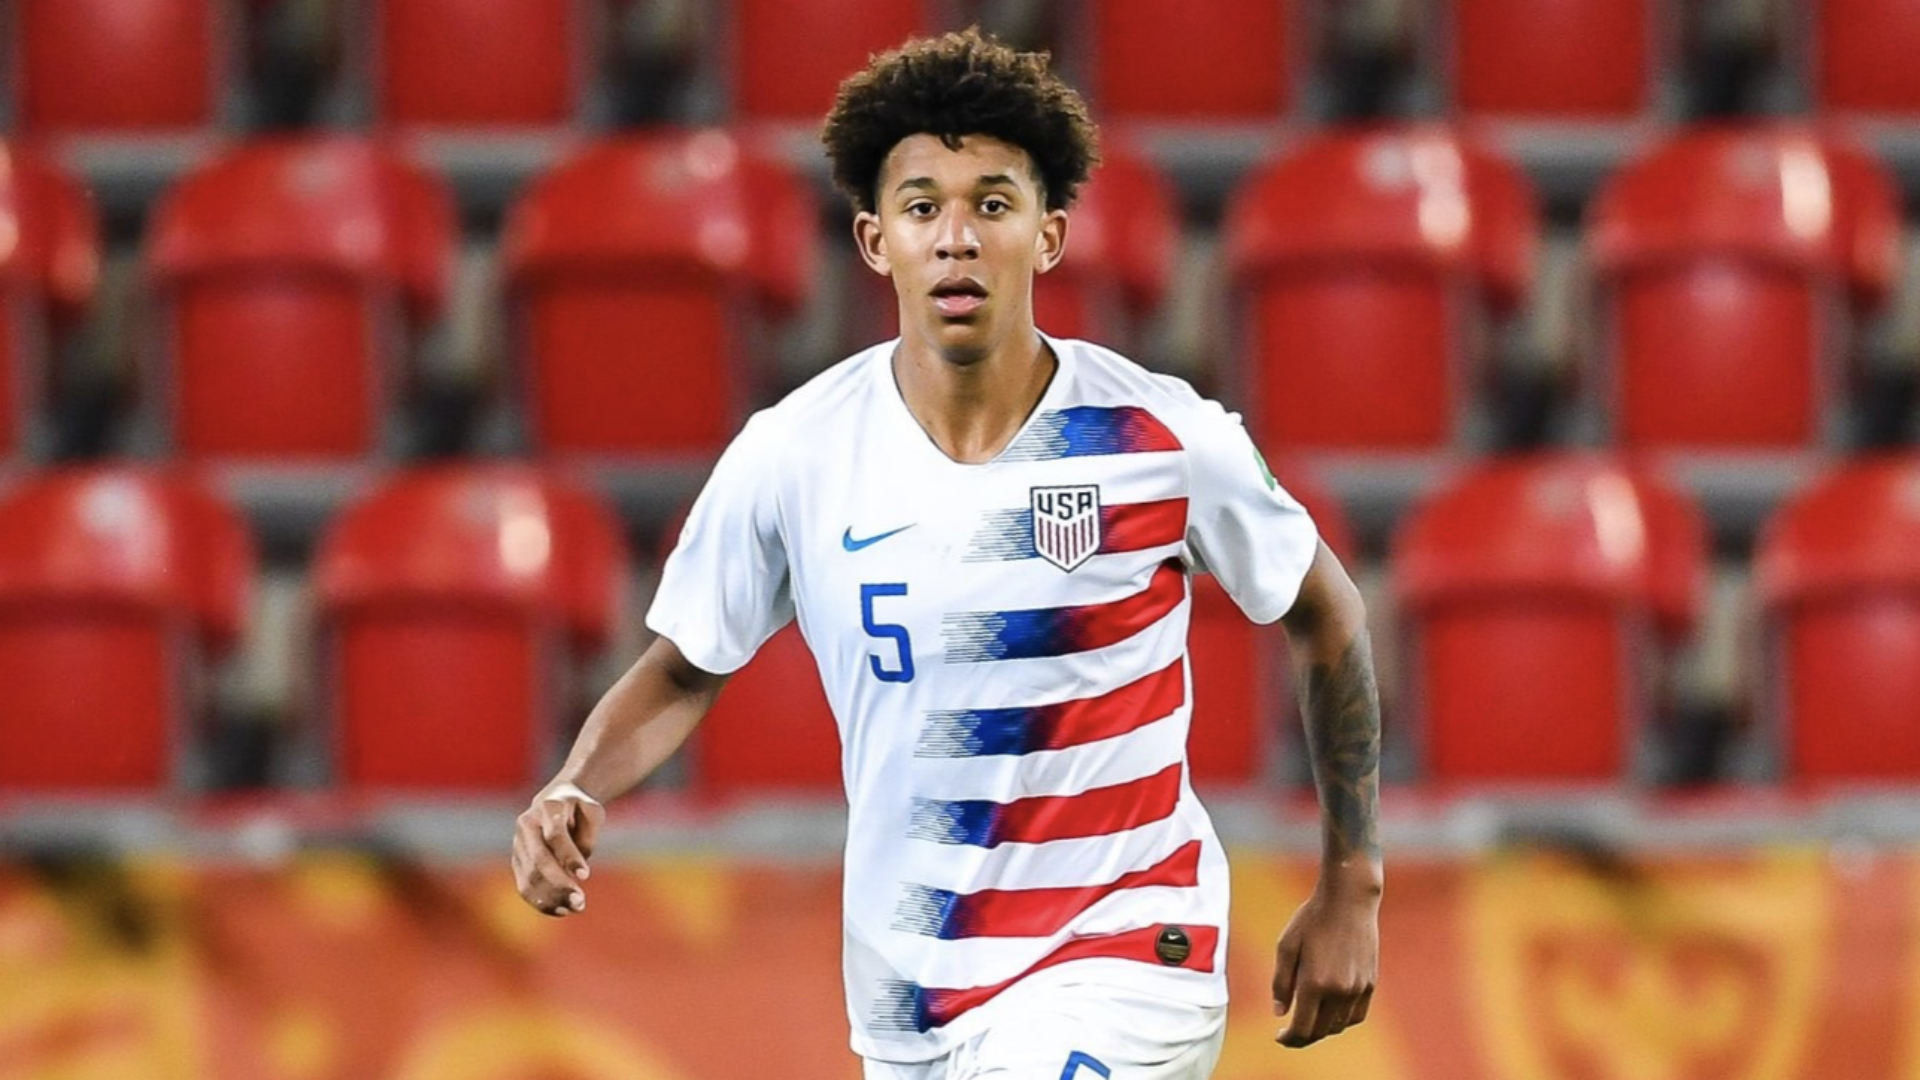 'We want to make history' - USMNT defender Richards sets sights on winning World Cup